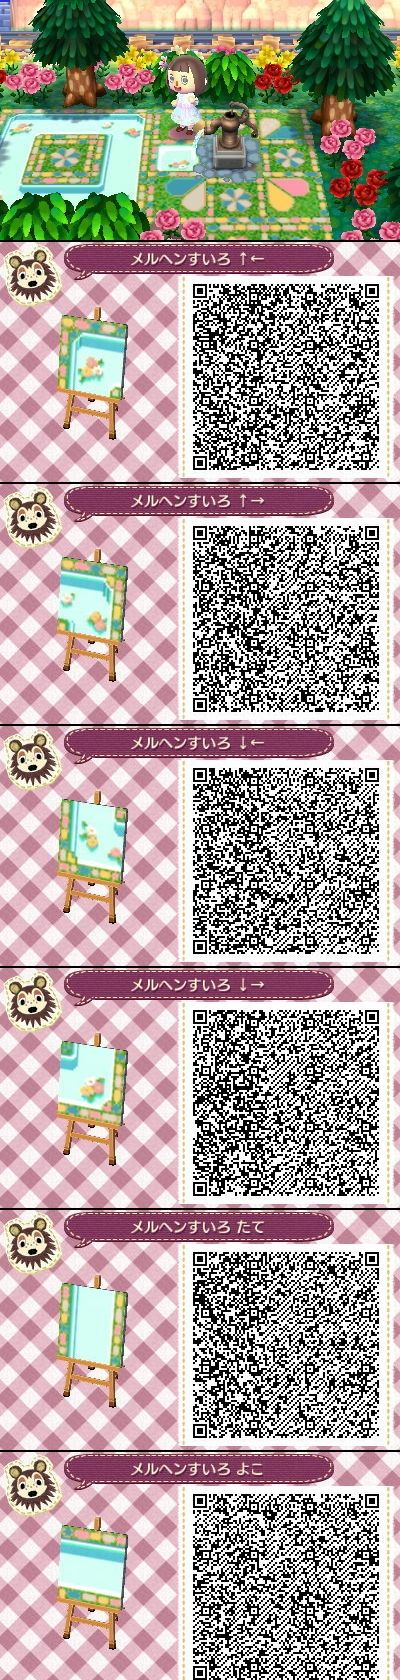 55 best images about animal crossing new leaf qr codes for paths on pinterest animal crossing. Black Bedroom Furniture Sets. Home Design Ideas